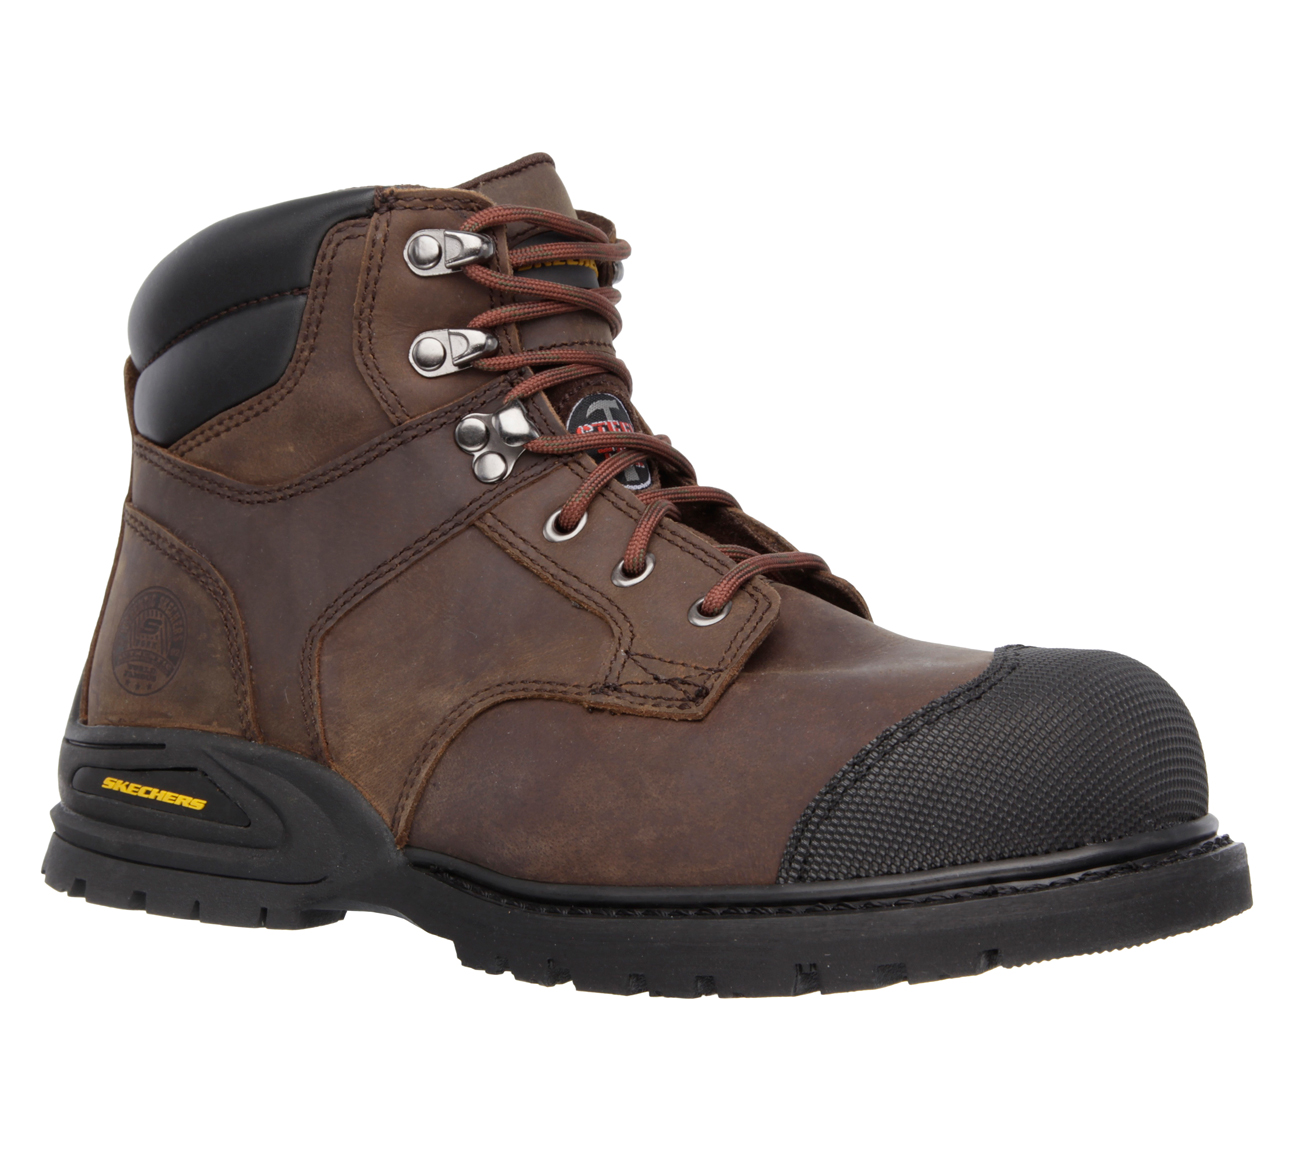 Over 1, styles of Steel Toe Shoes, Steel Toe Boots, Composite Toe Shoes and Composite Toe Boots at viplikecuatoi.ml Shop Our Great Selection of Reebok Steel Toe Shoes, Nautilus Steel Toe Shoes, Timberland Steel Toe Shoes, Thorogood Steel Toe Shoes and Much More at Steel Toe Shoes.